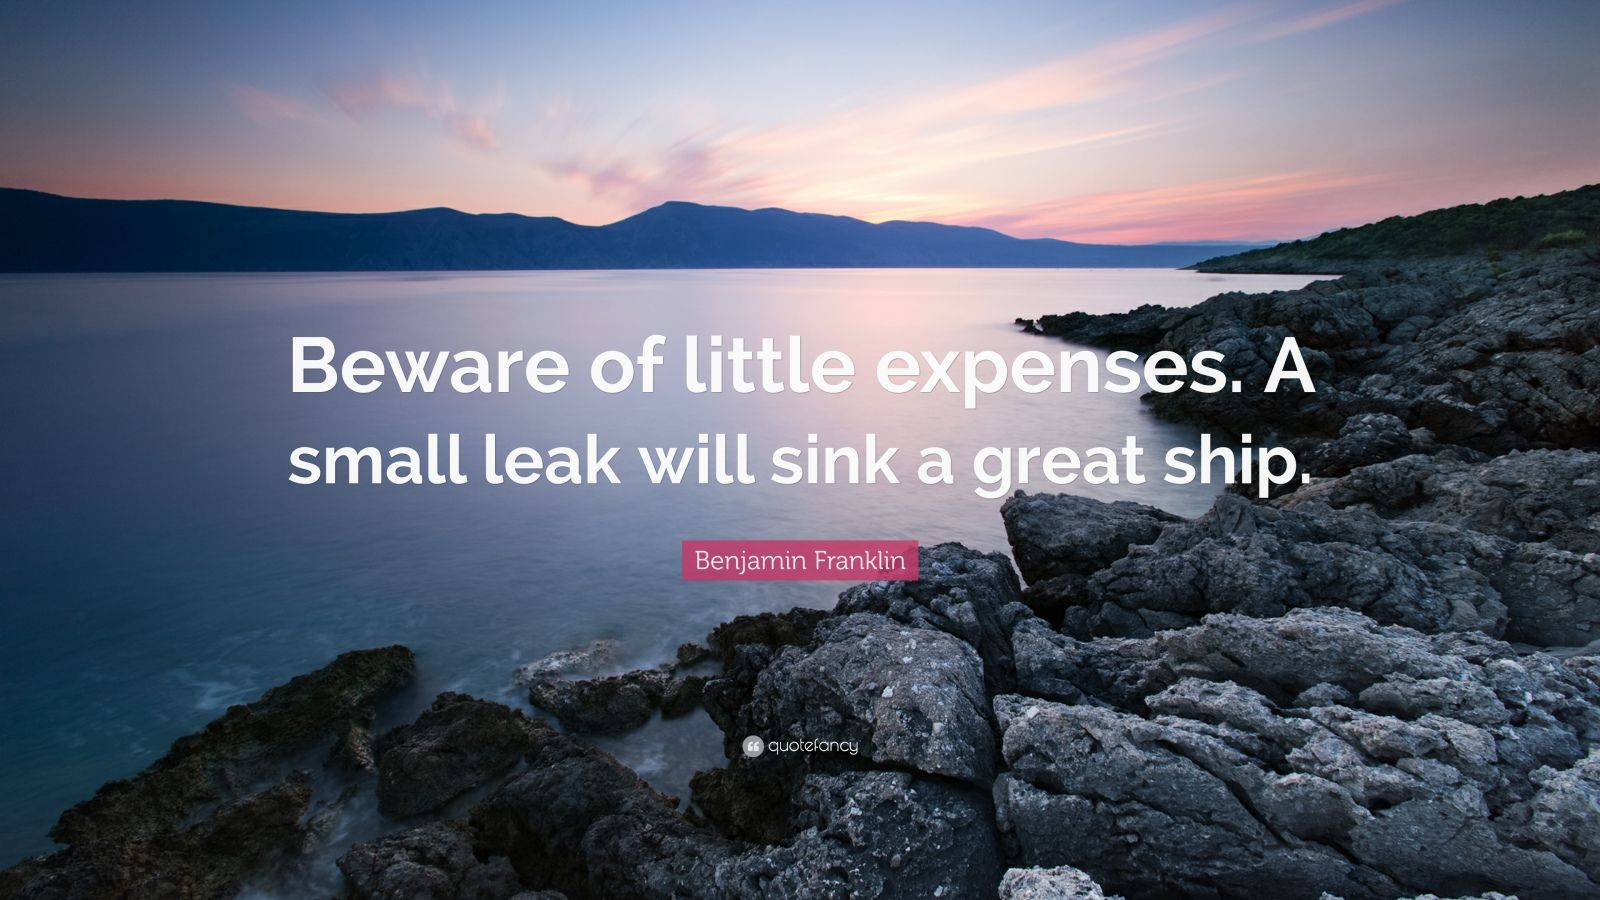 """Benjamin Franklin Quote: """"Beware of little expenses. A small leak will sink a great ship."""""""